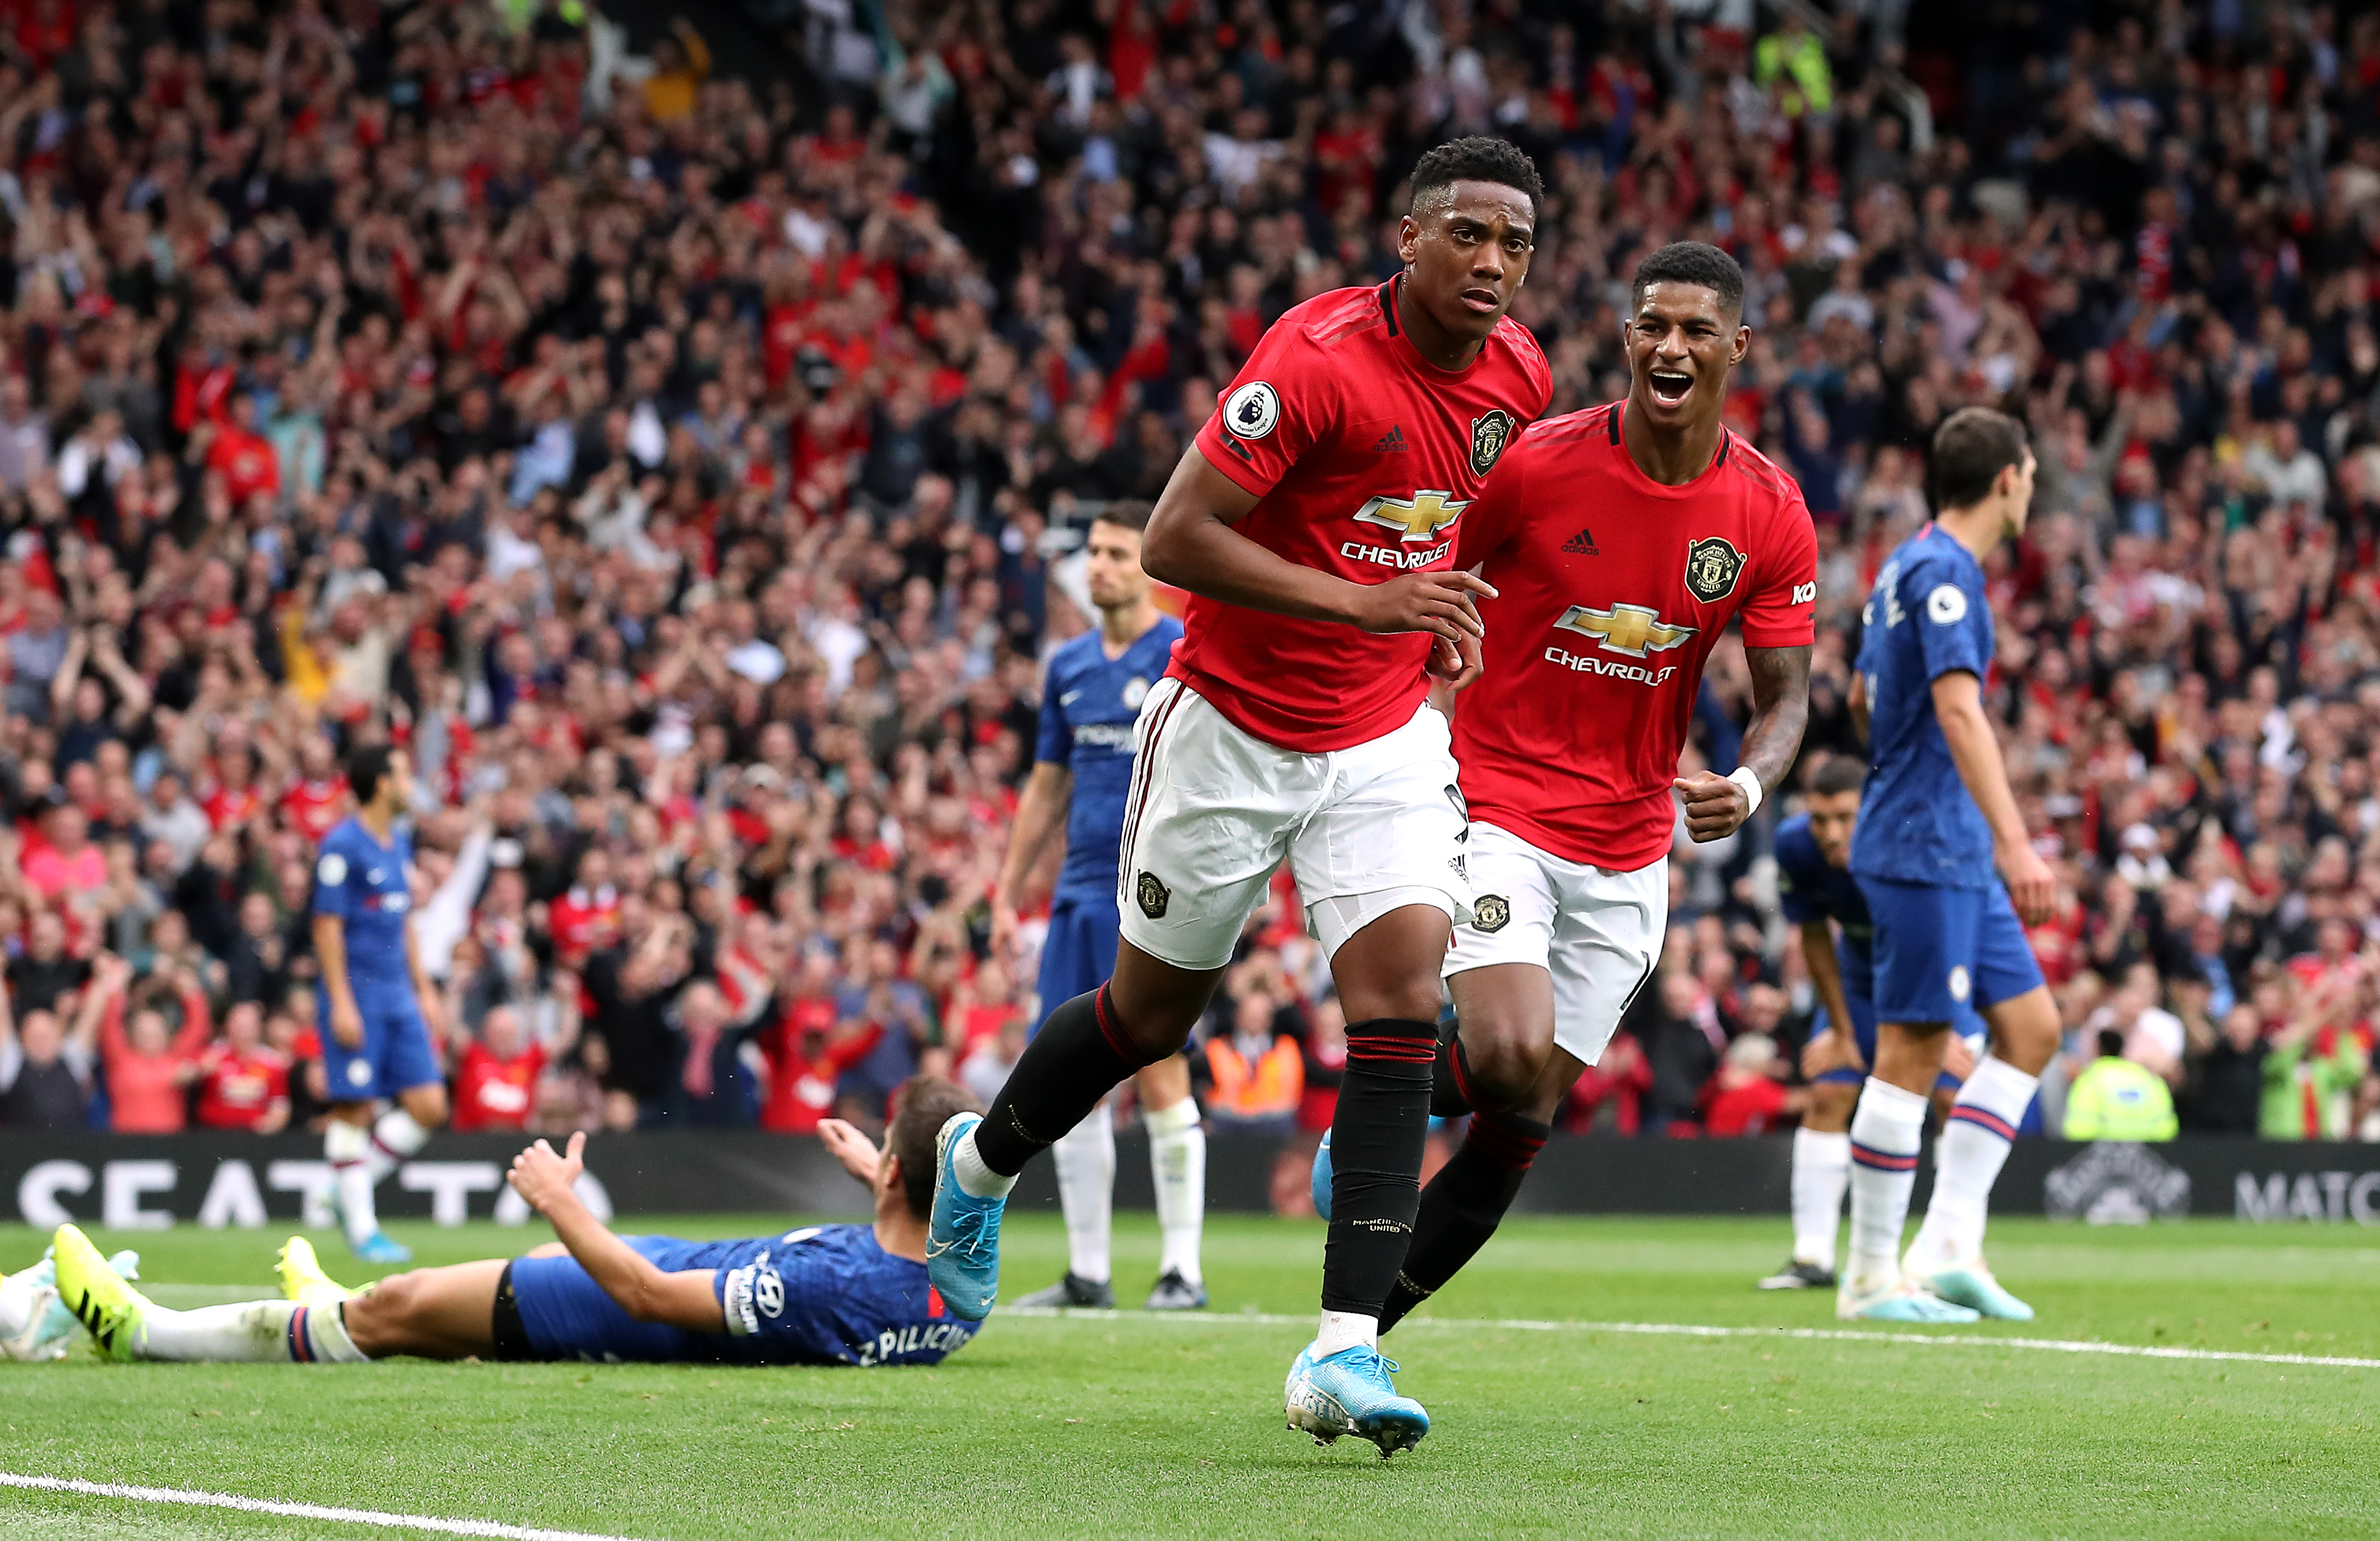 Anthony Martial and Marcus Rashford have been compared to some rival Premier League players